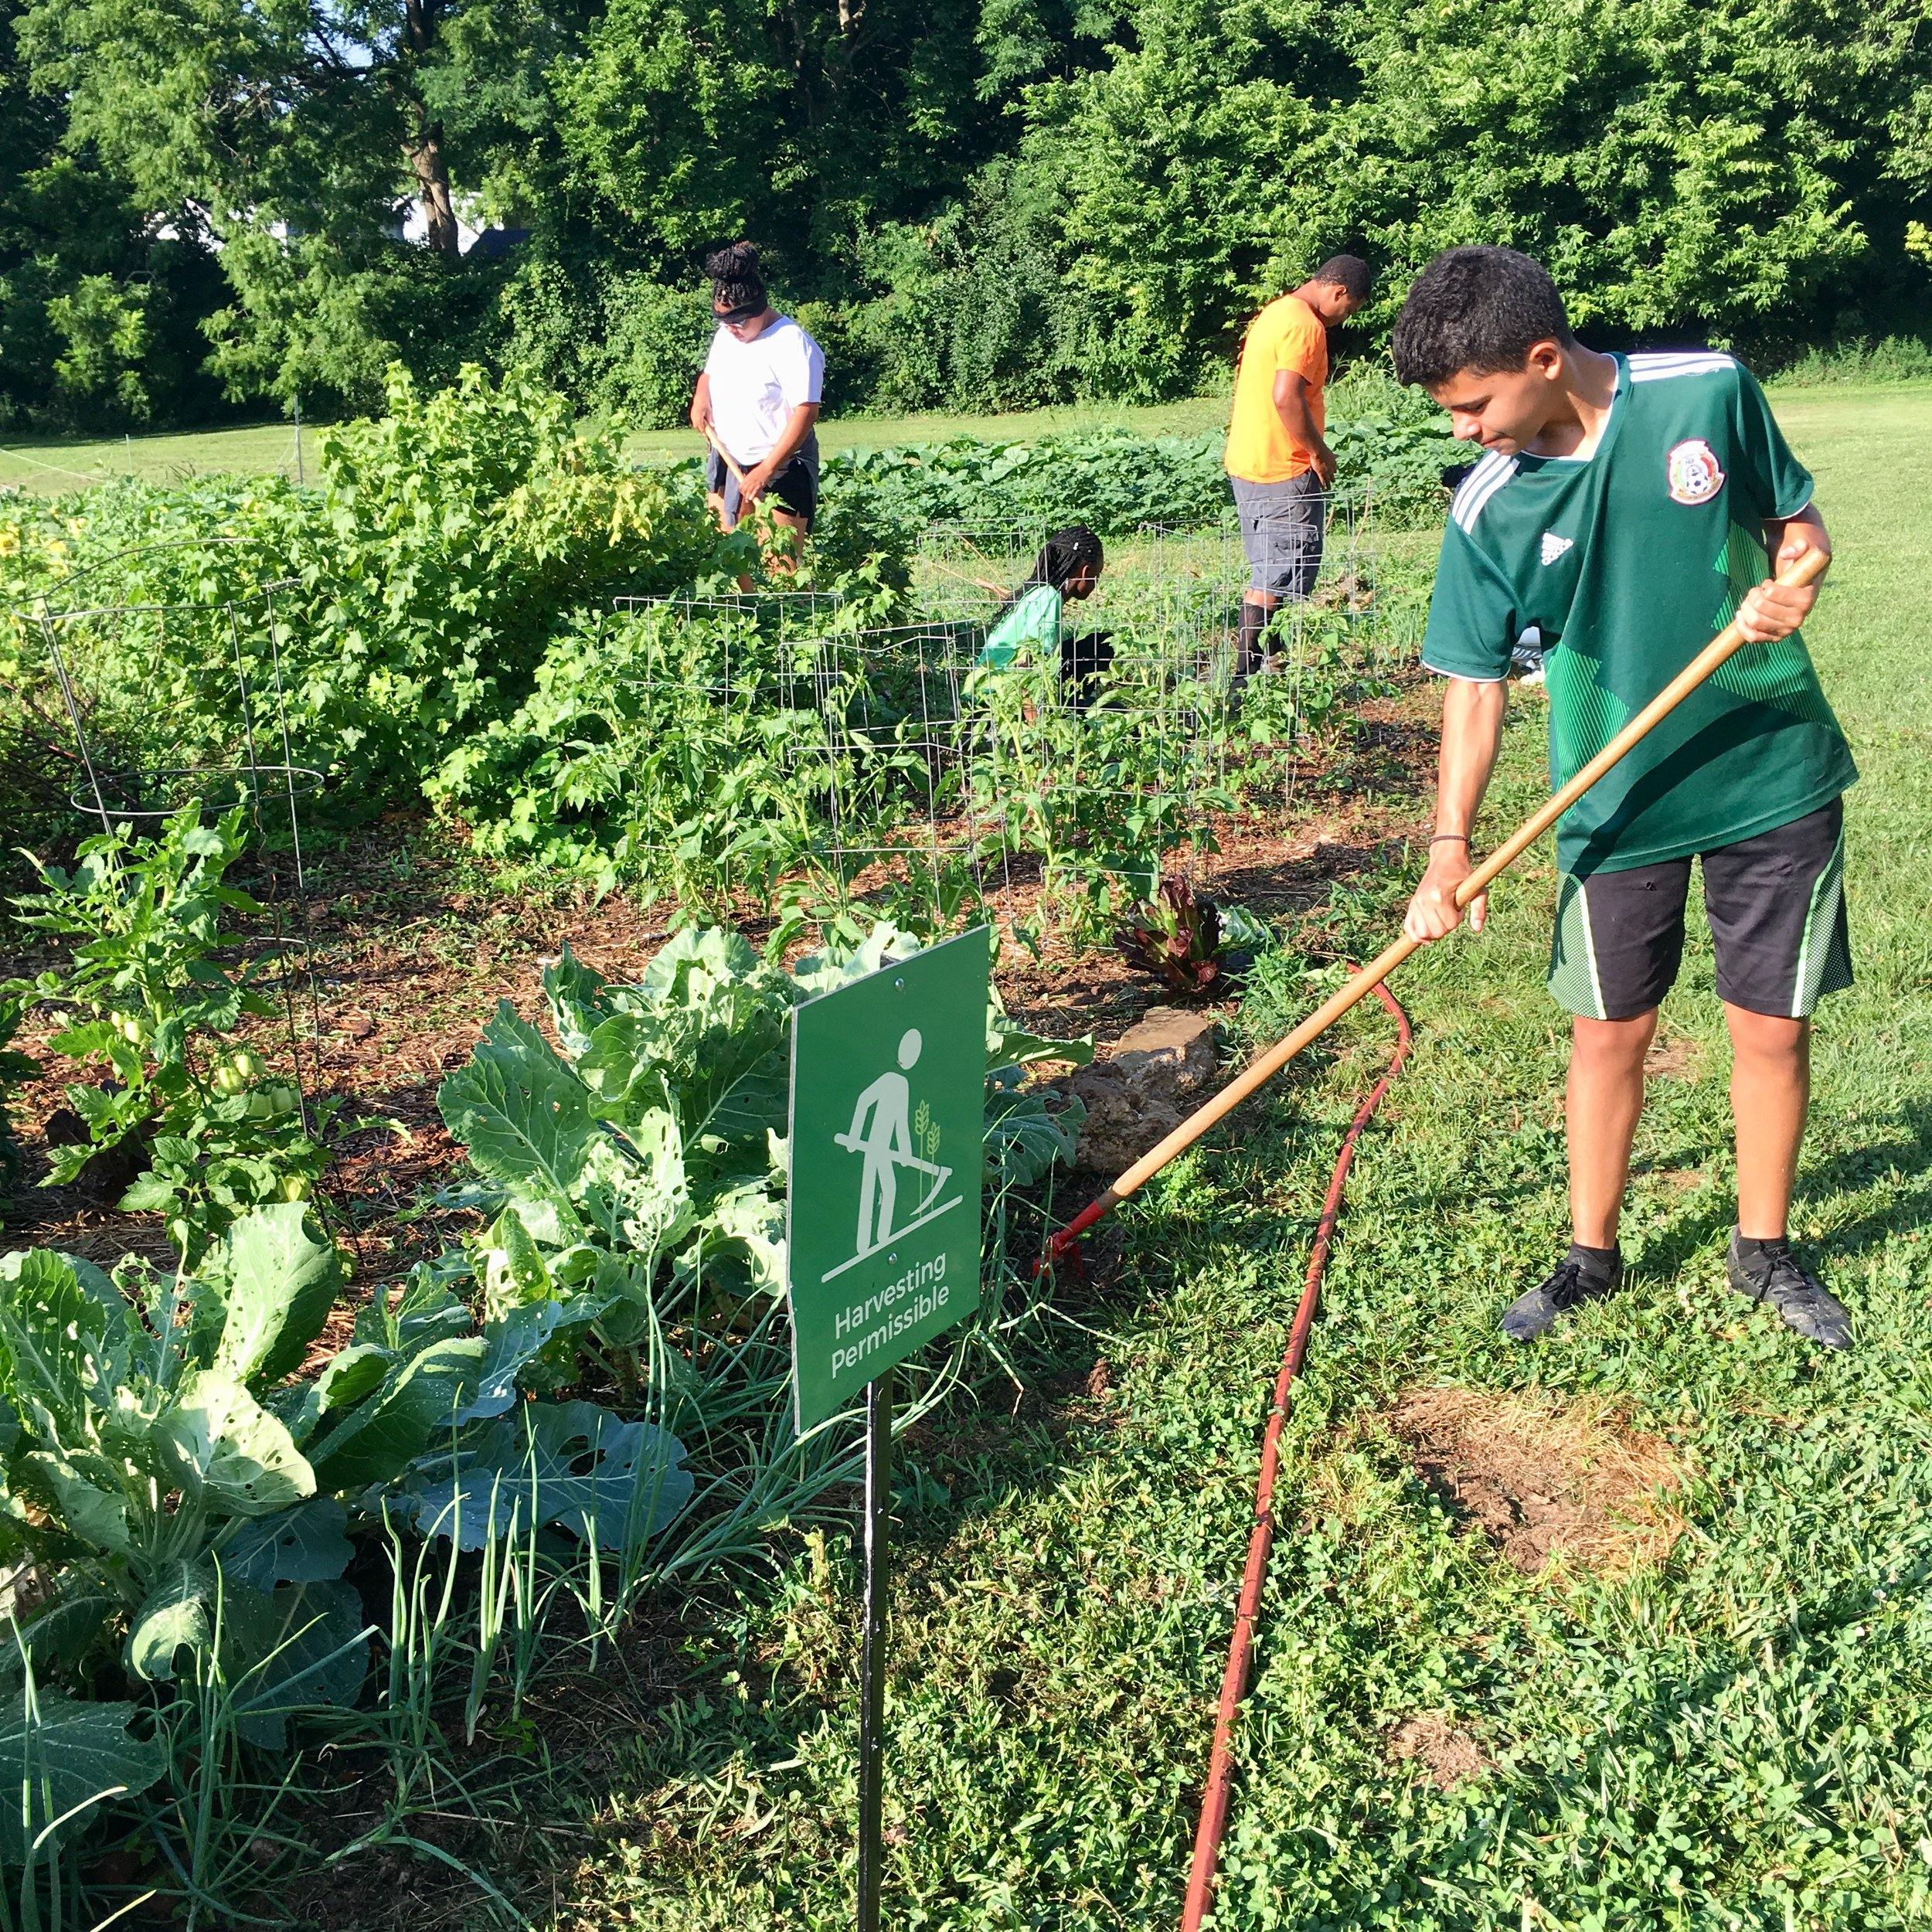 Derek and a few of our SEEDS participants are seen here weeding the u-pick plot at the Seedleaf Community Farm. Our youth have been busy four mornings each week caring for three gardens, two food forests, and cooking some freshly harvested items as well!